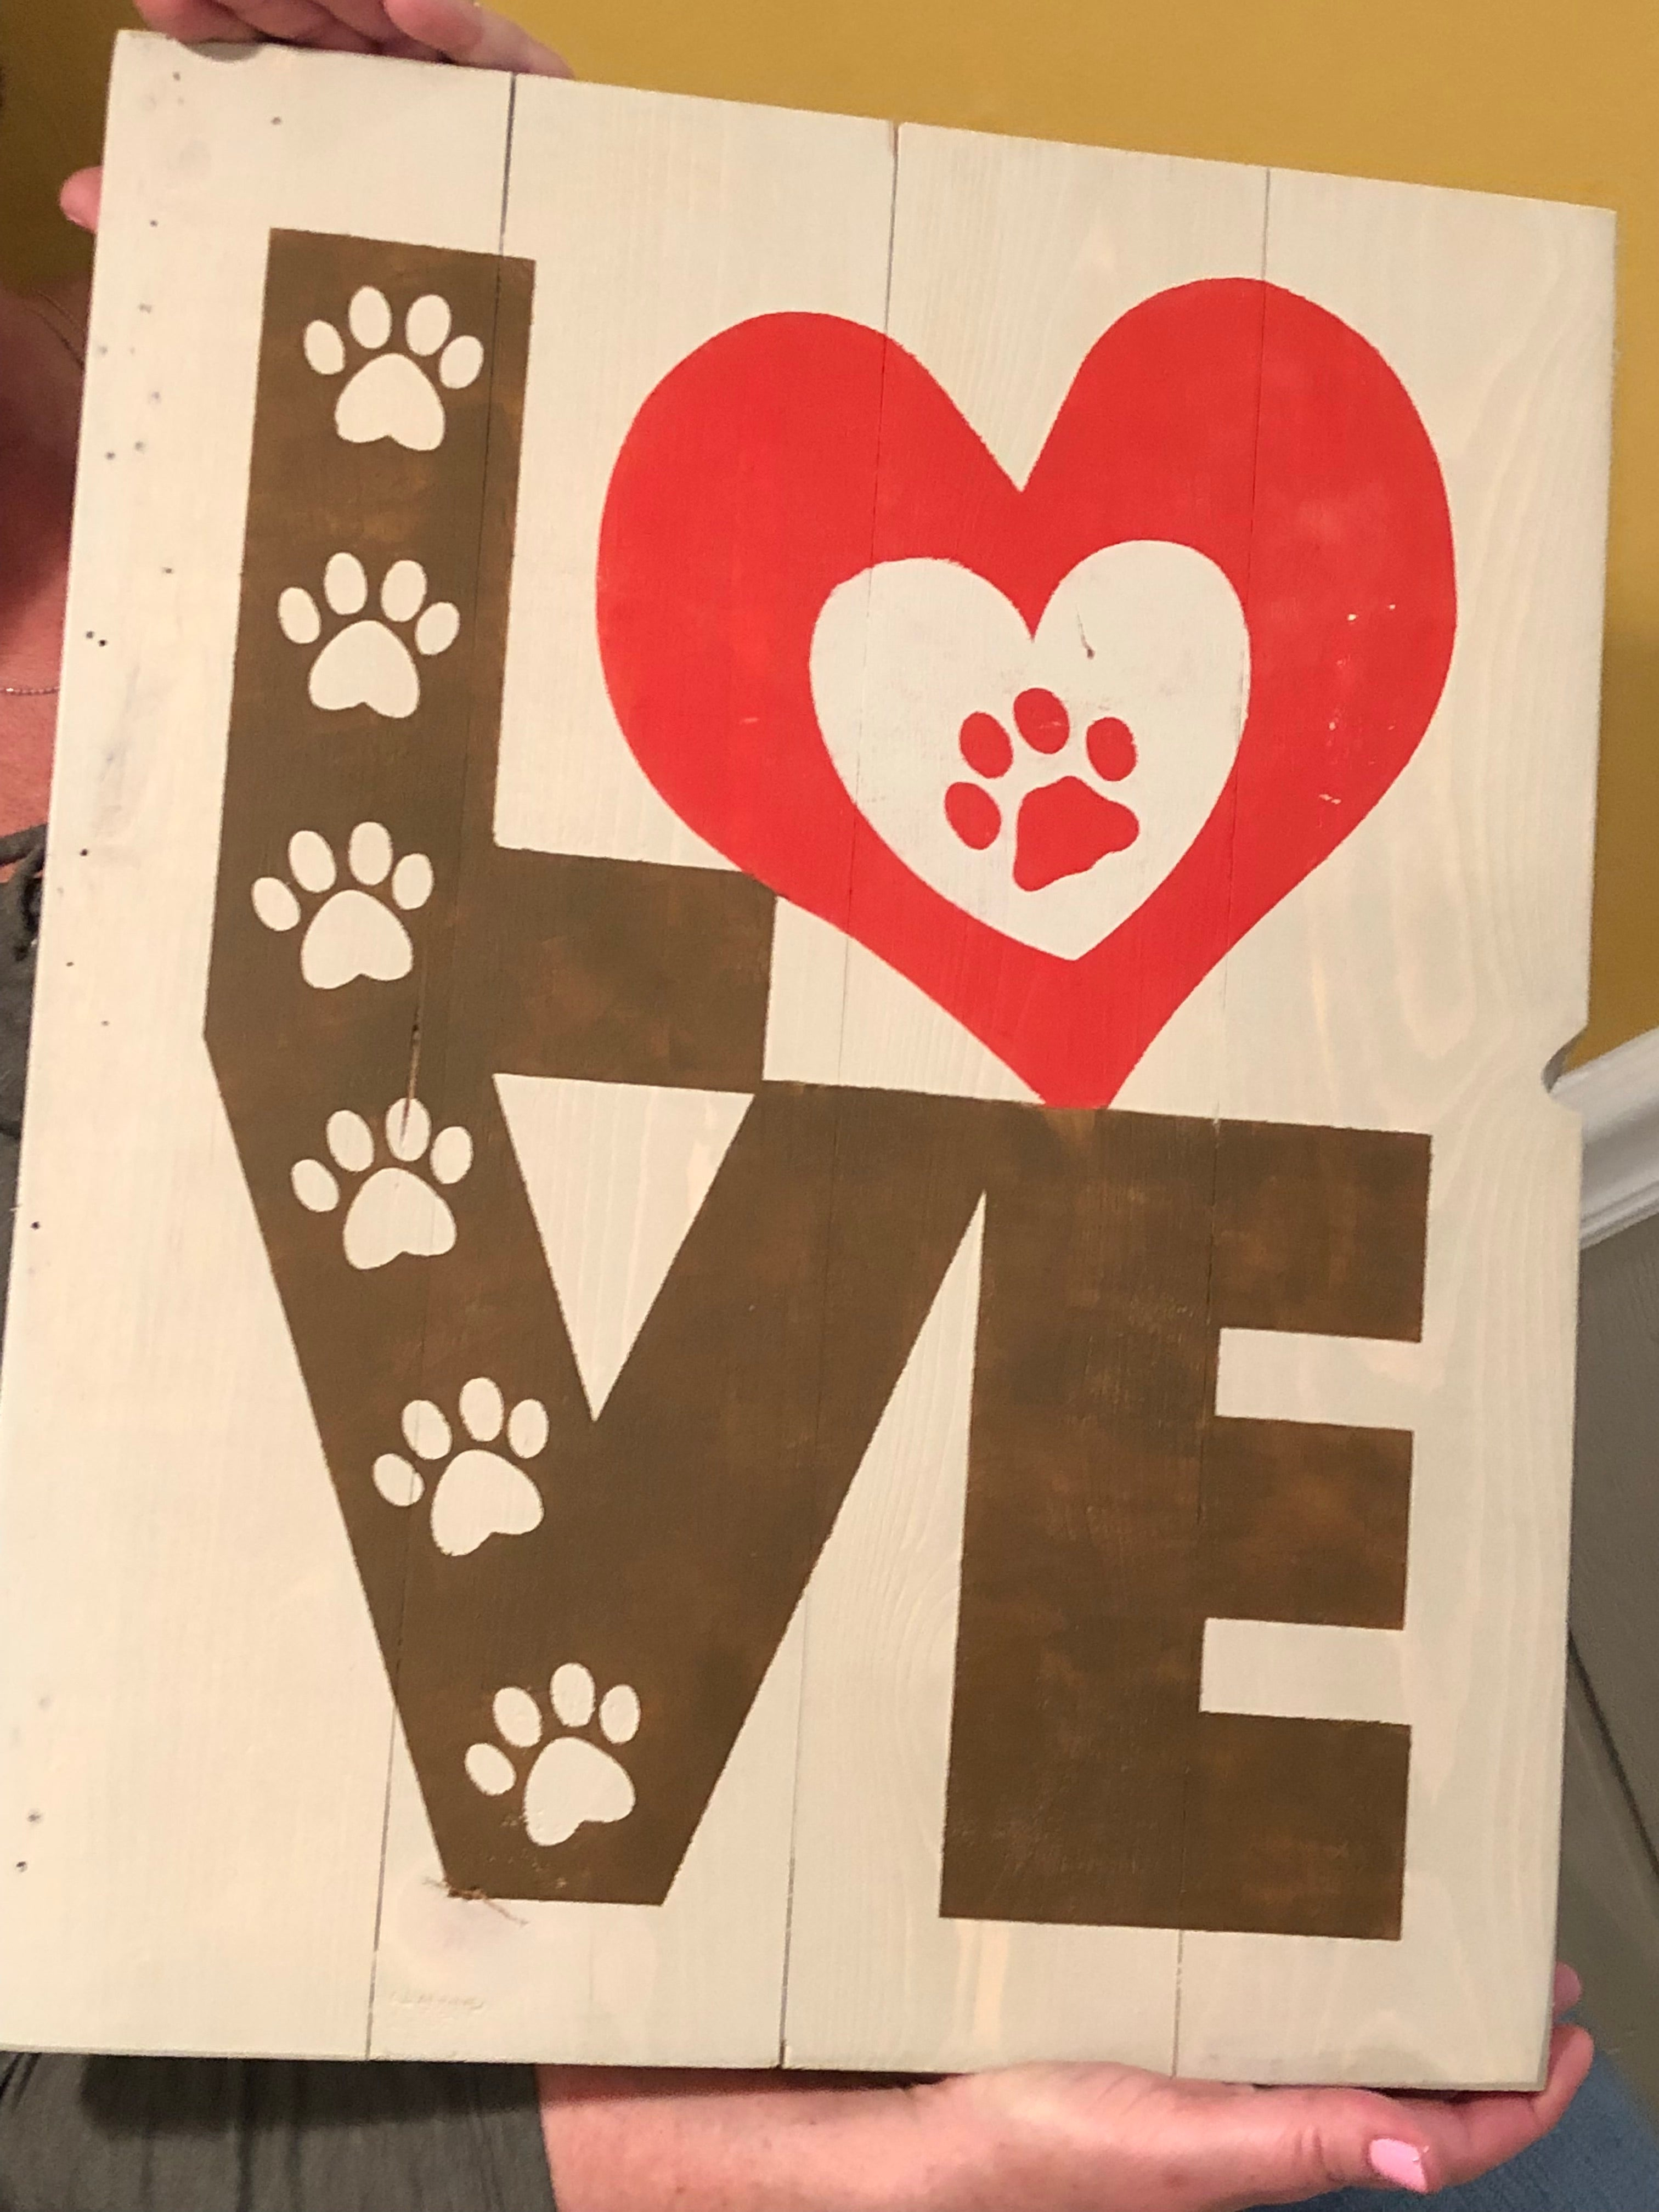 Love with paw prints in the letters